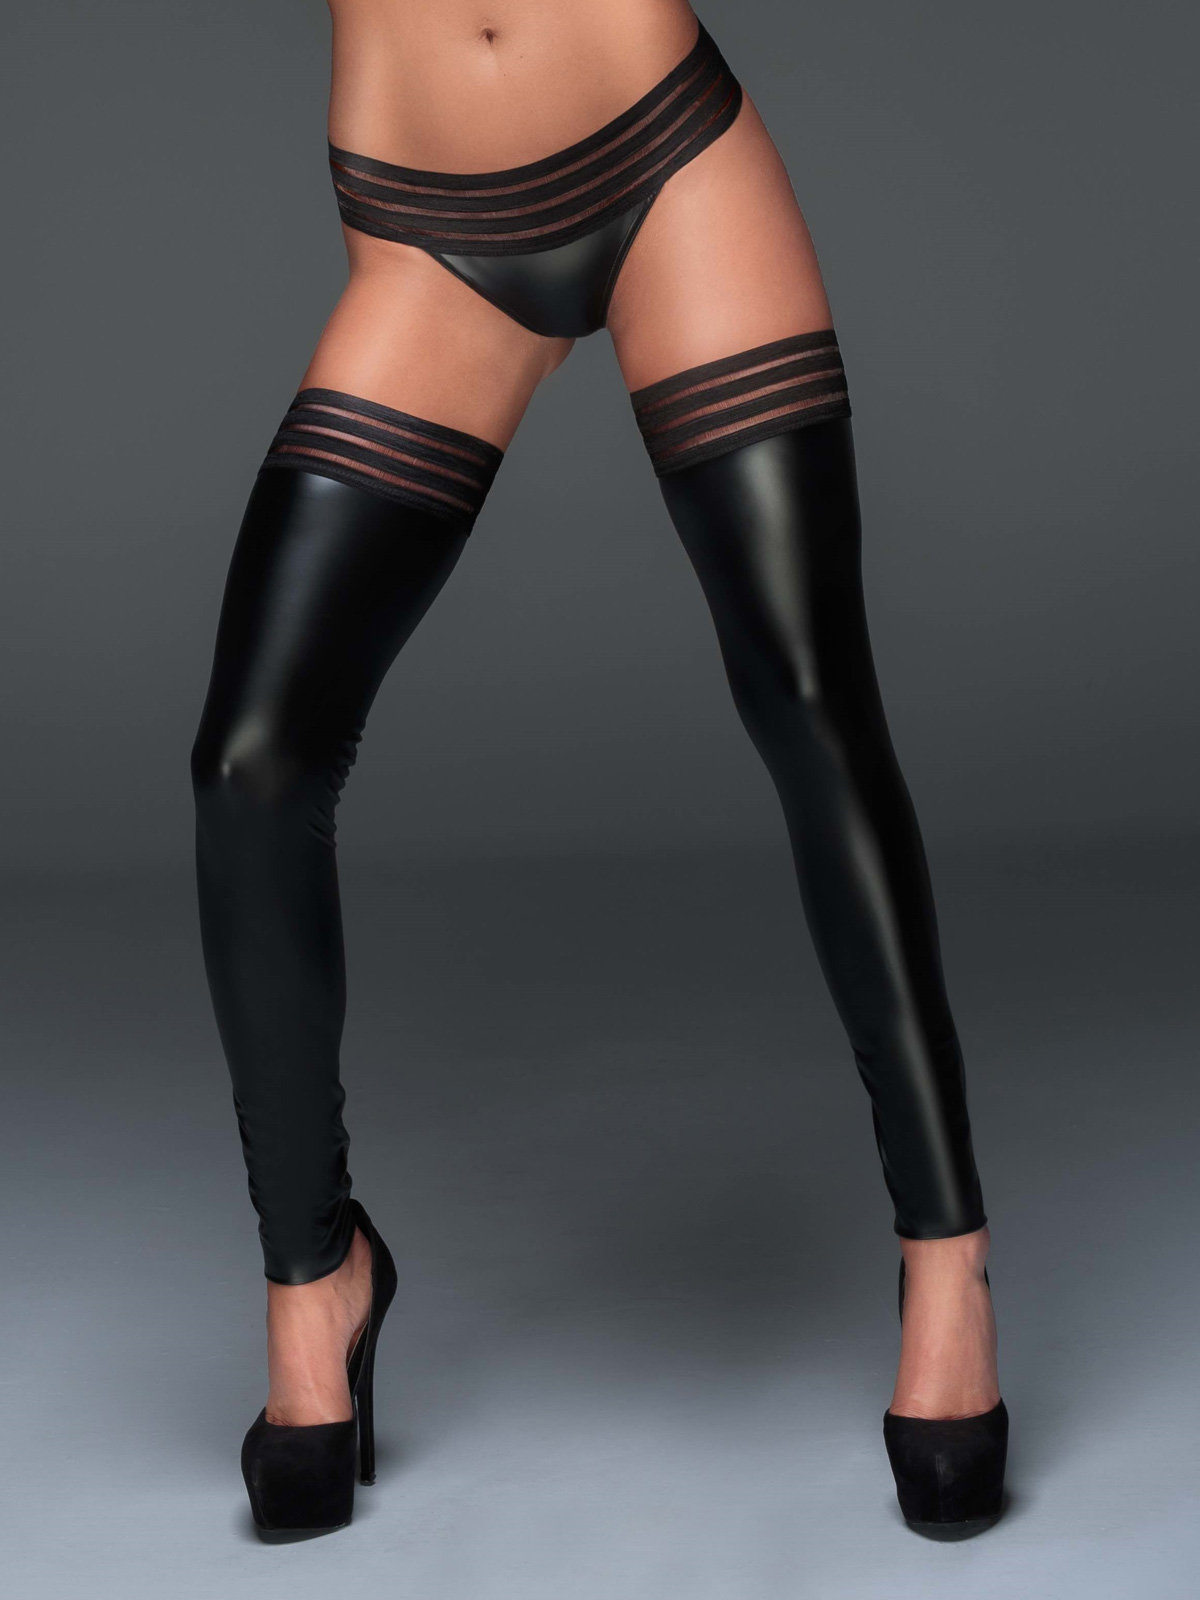 Noir Handmade Chilot Powerwetlook panty Negru